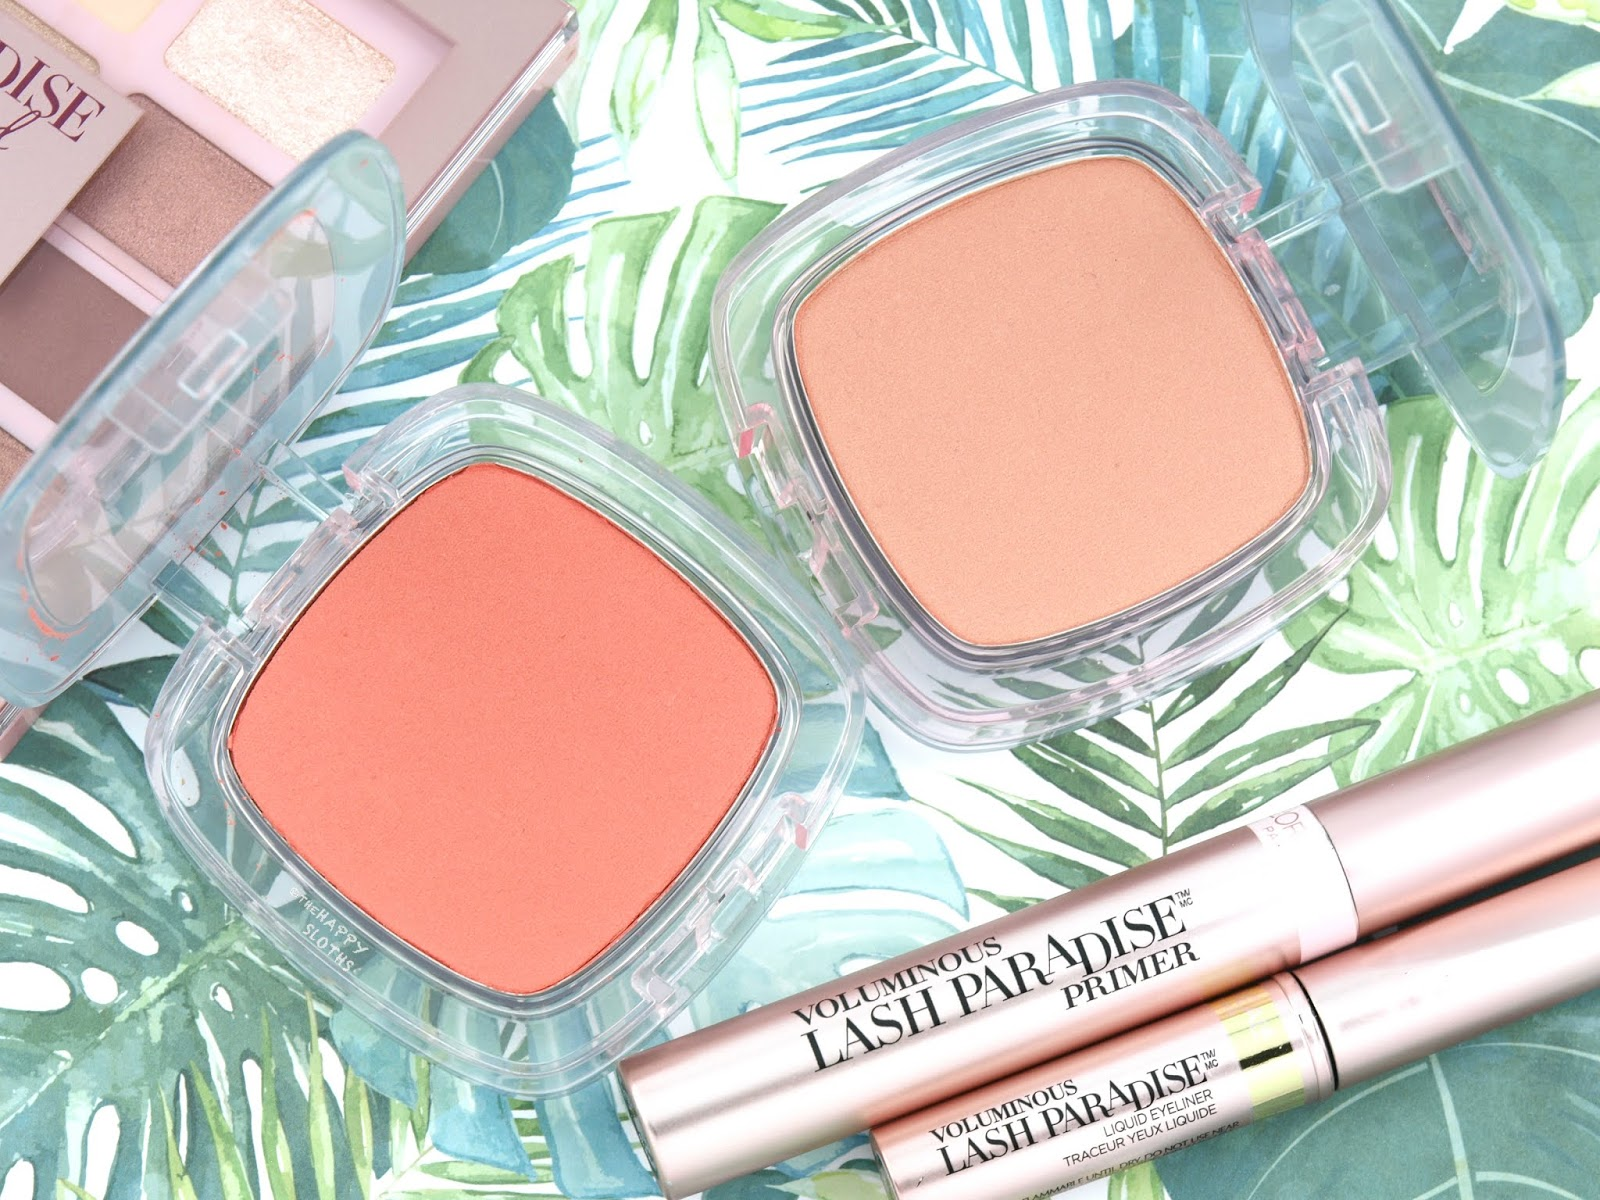 L'Oreal | Paradise Enchanted Fruit-Scented Blush: Review and Swatches